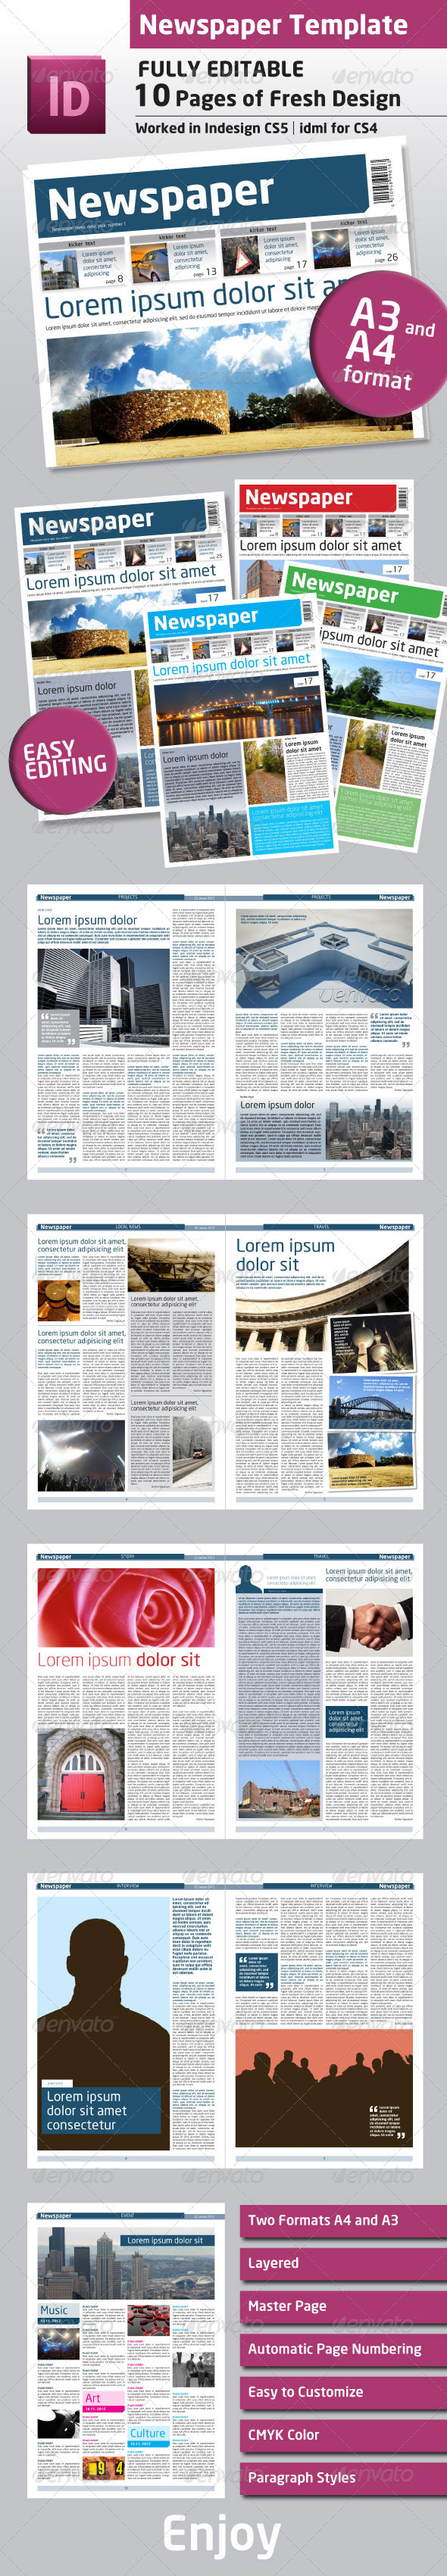 Newspaper Template A4 And A3 Format 10 Pages By Grgaatree